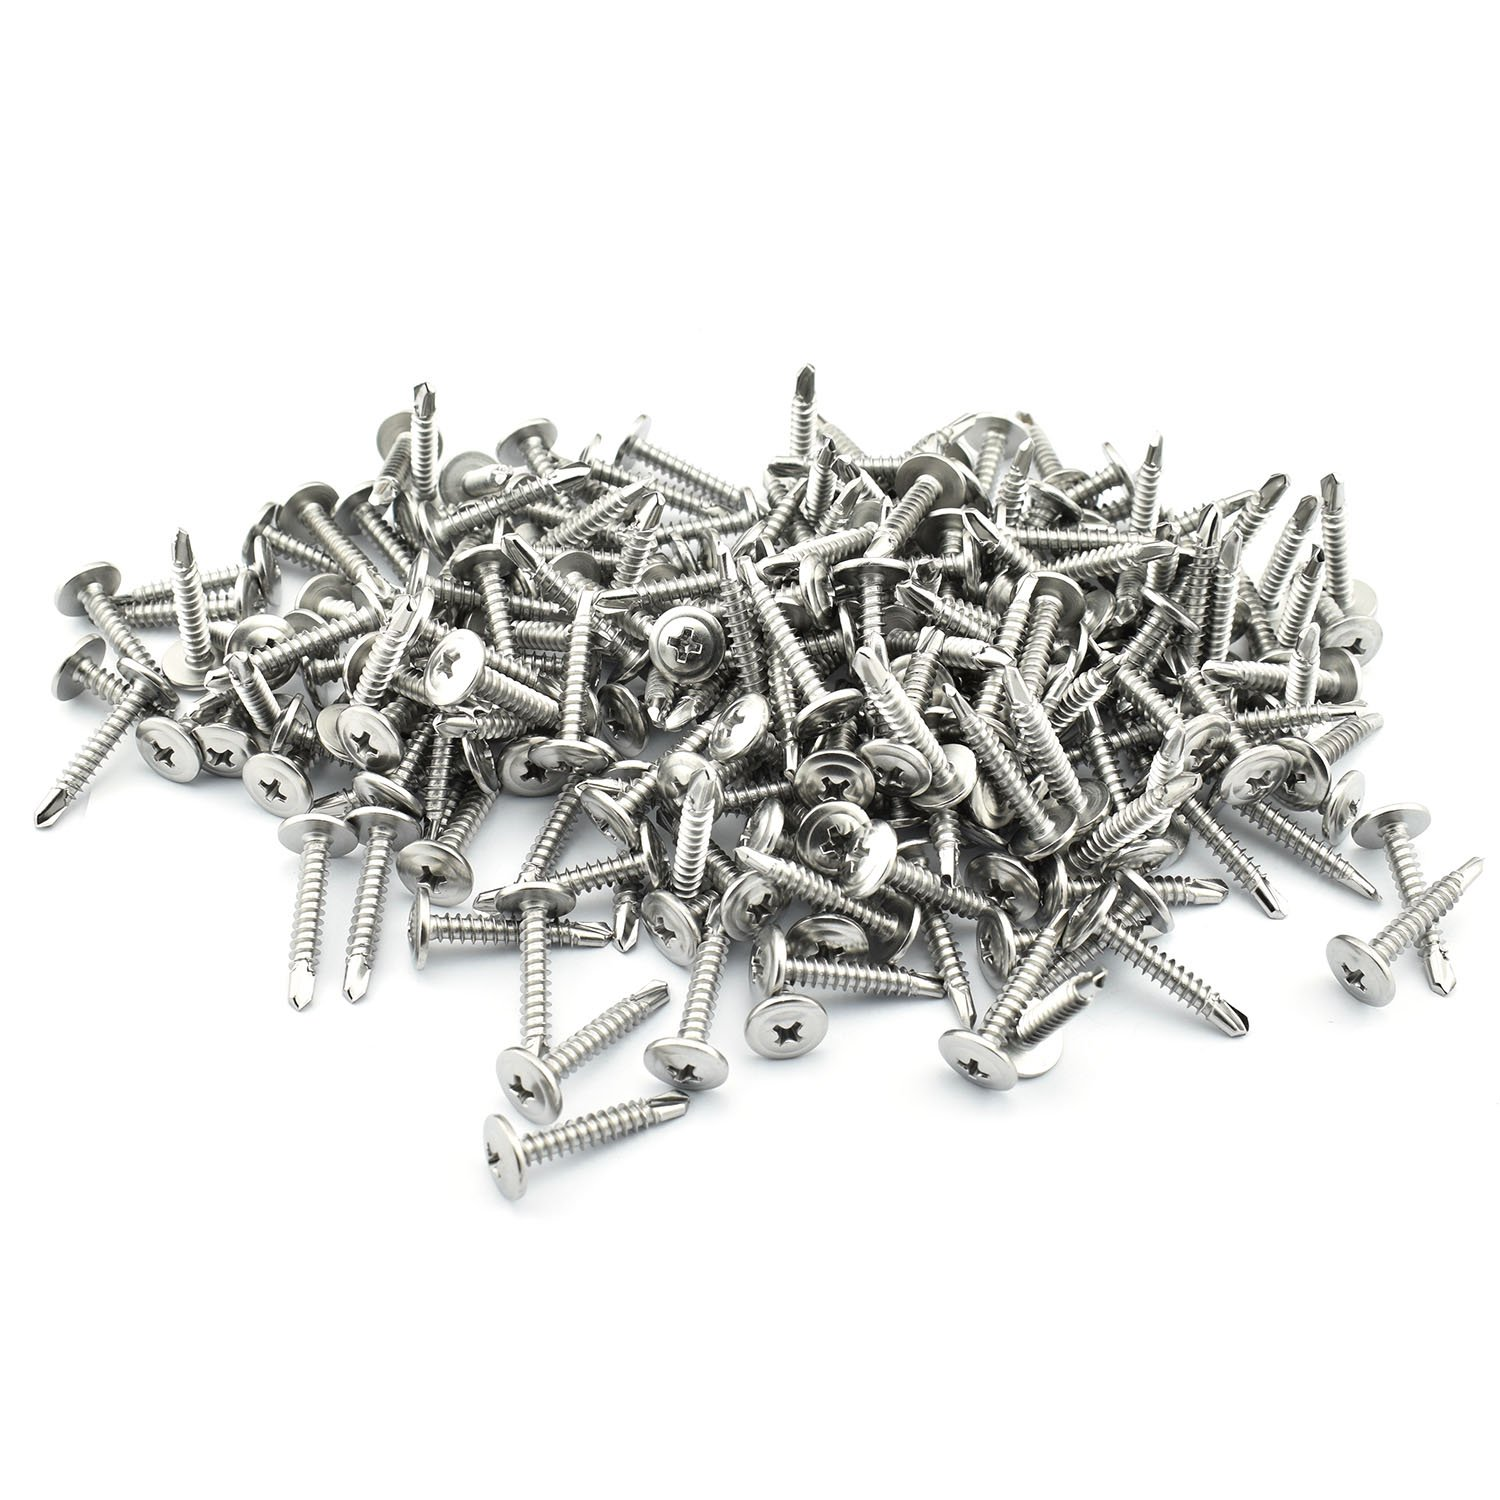 200 Pack Self-Drilling Dovetail Screws 410 Stainless Steel #10 3//4 Inches Truss Head Phillips Drive Drill Point Tek Screws